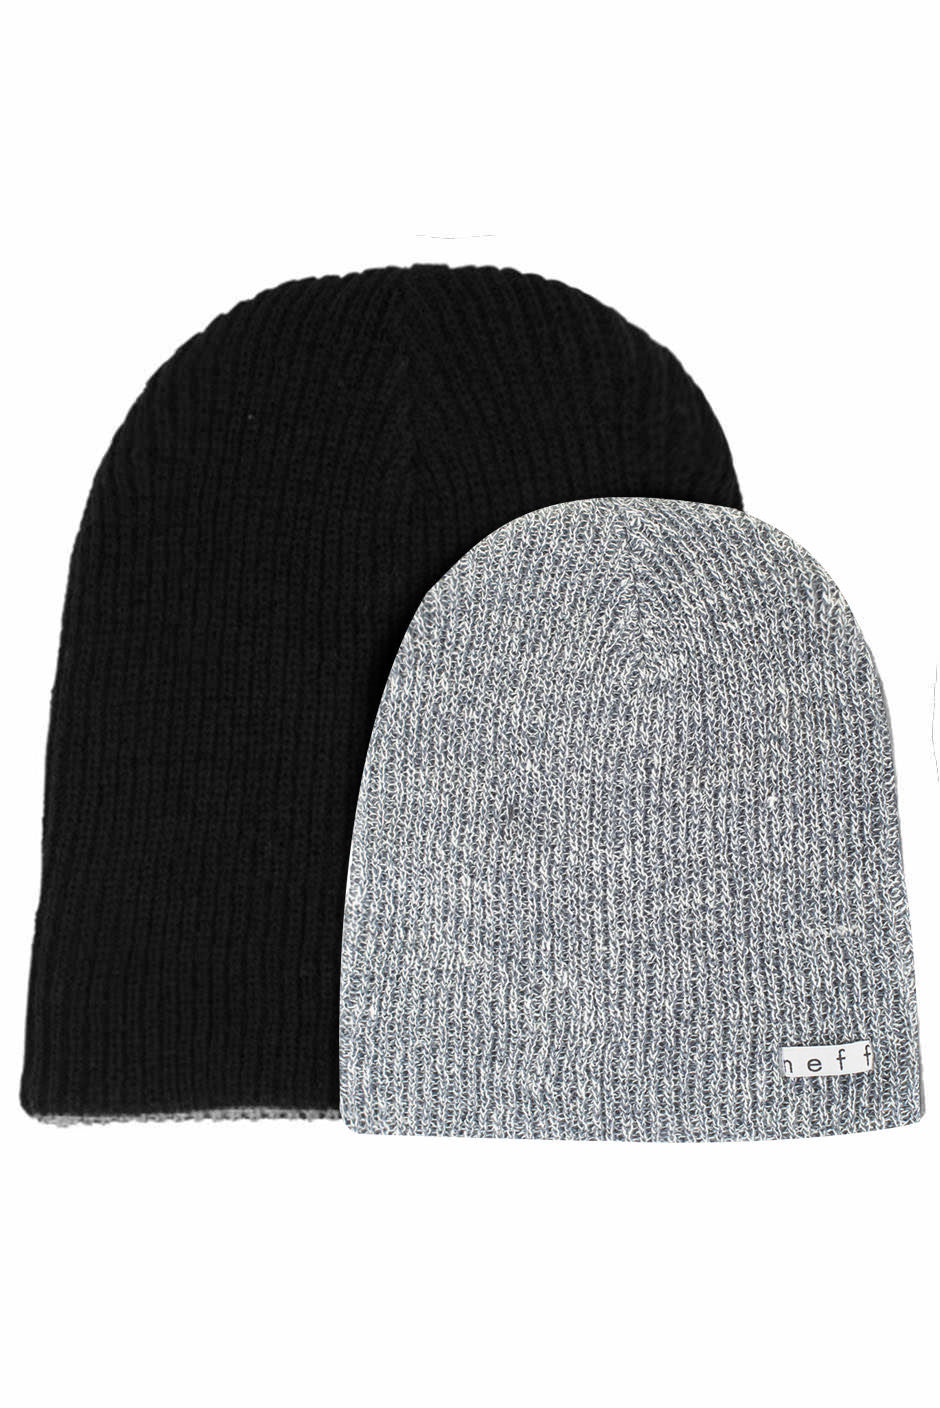 3c5cb9a2fc5 Neff Daily Reversible Beanie Multiple Colors